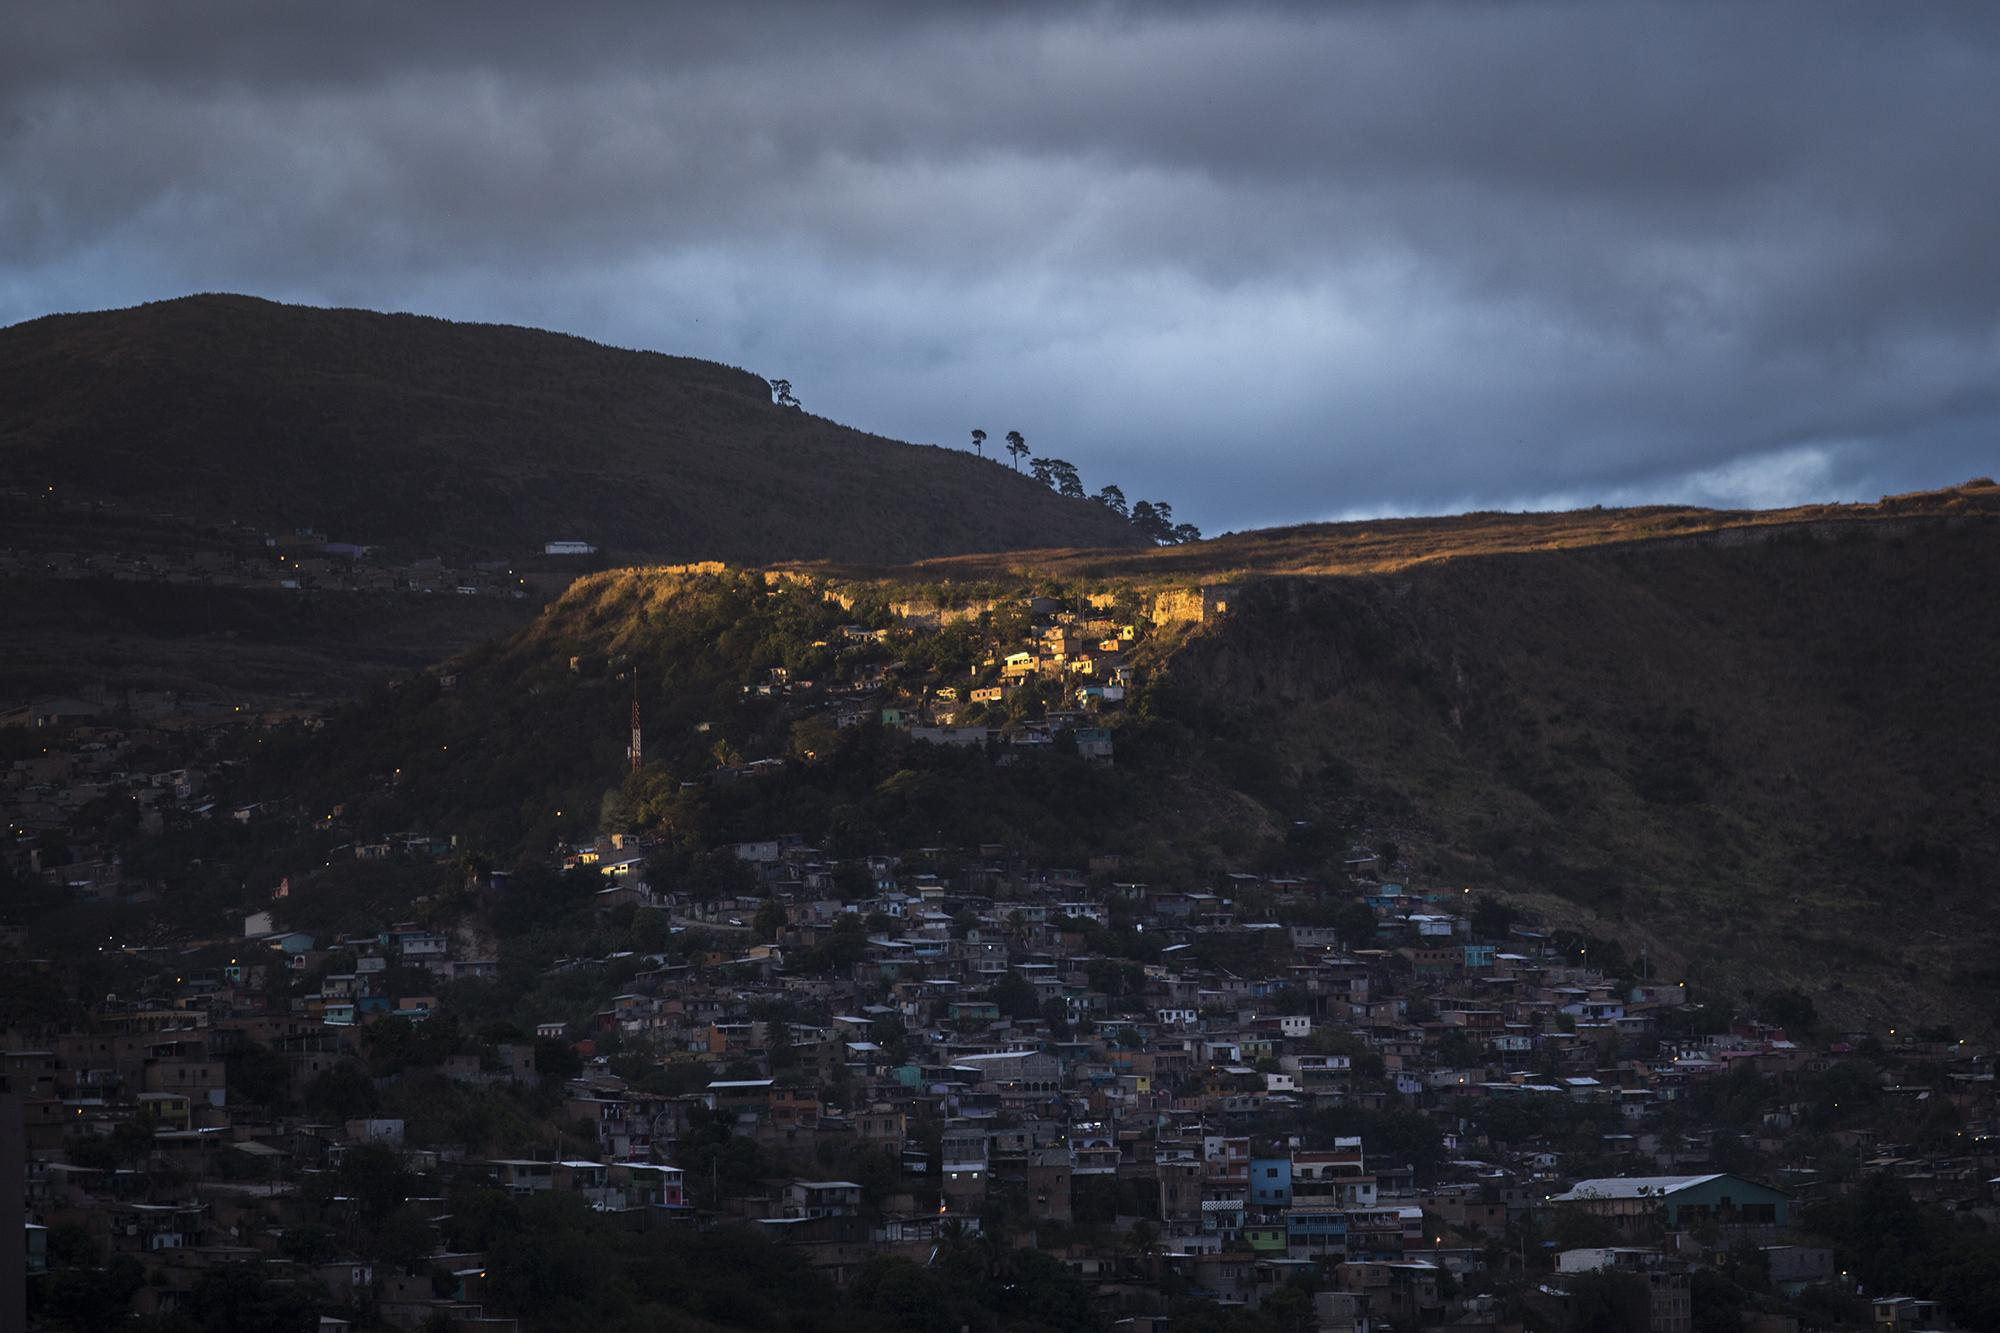 Sunset over Tegucigalpa. The Honduran capital is surrounded by suburbs under control of the gangs. The inequality of the city is a result of widespread political corruption. Foto: Víctor Peña.